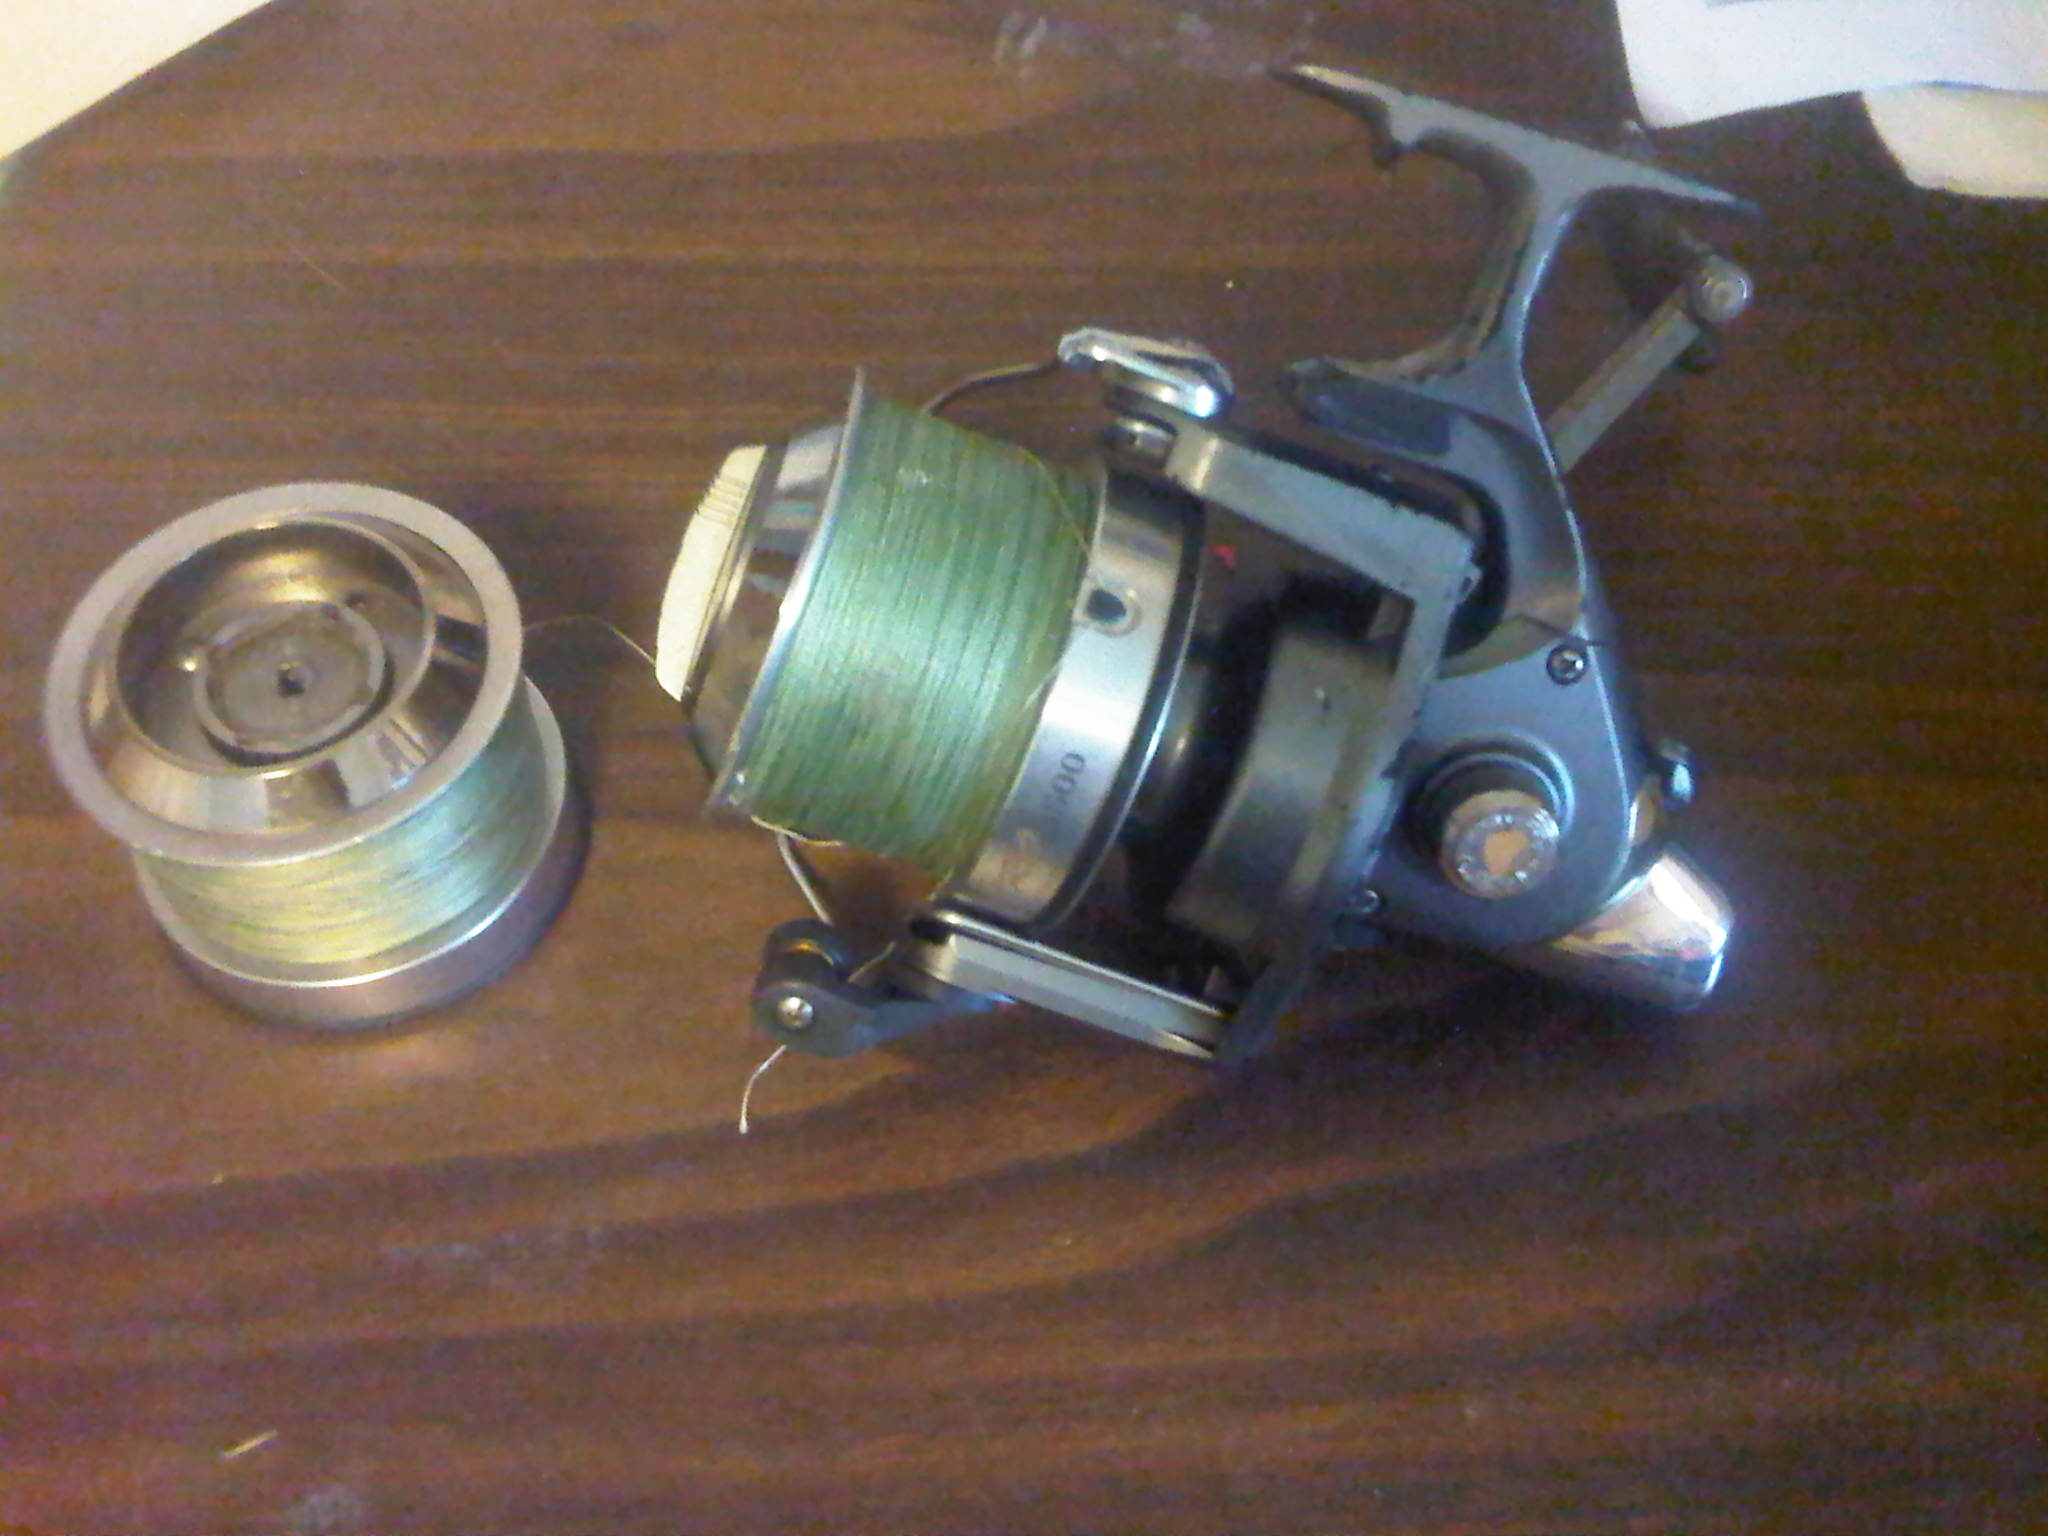 Daiwa Emblem Pro 5500 and penn 8500 spool(new) - General Buy